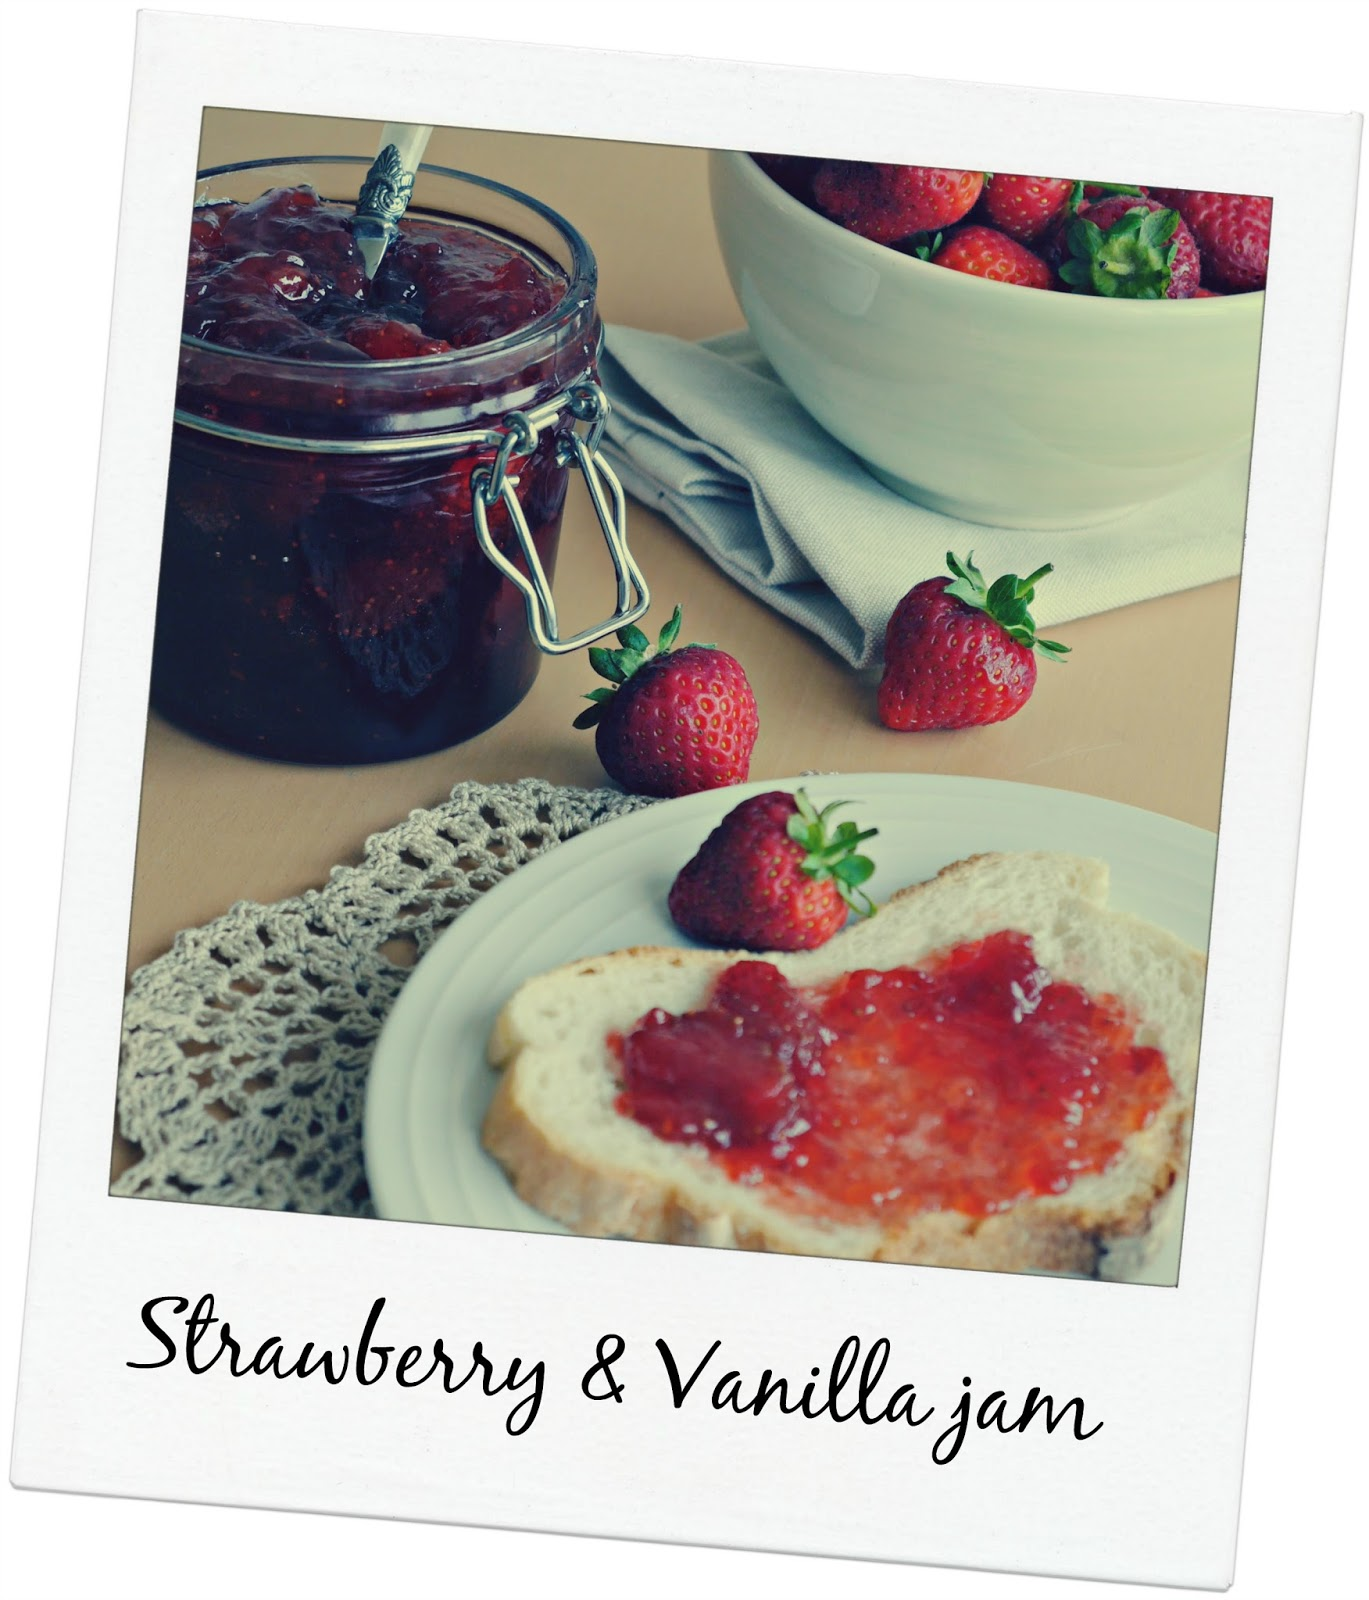 Strawberry & vanilla jam